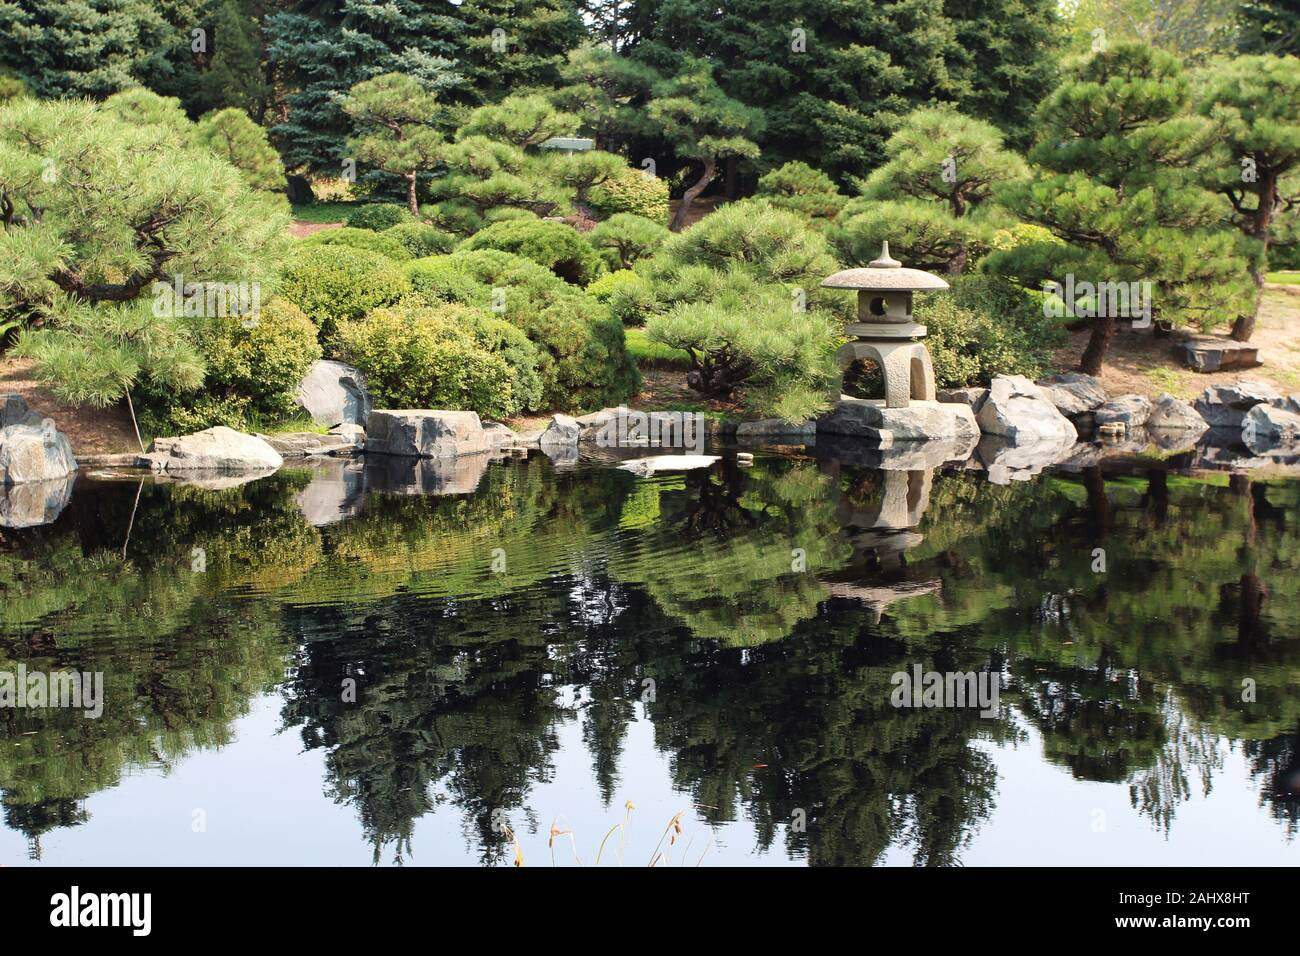 A Japanese style garden with a stone lantern and various cultivated evergreen trees next to a lake, with the landscape reflected in the water in Color Stock Photo